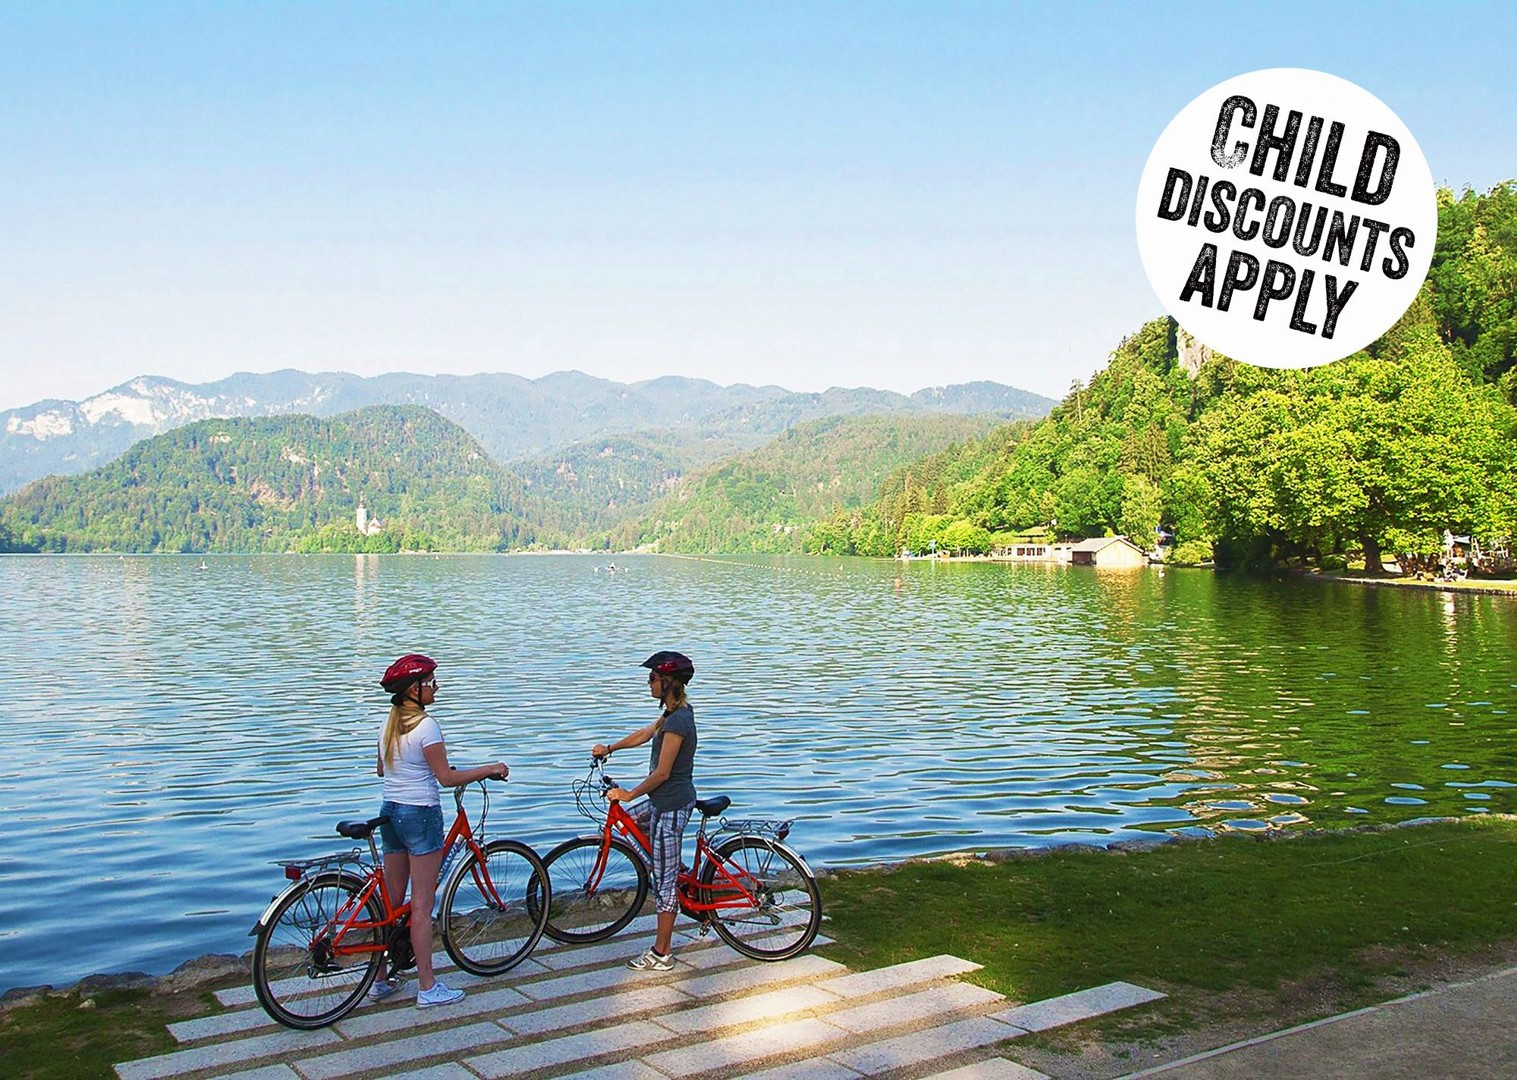 led-castle-self-guided-family-cycling-holiday-slovenia-magical-lake-bled.jpg - NEW! Slovenia - Magical Lake Bled - Family Cycling